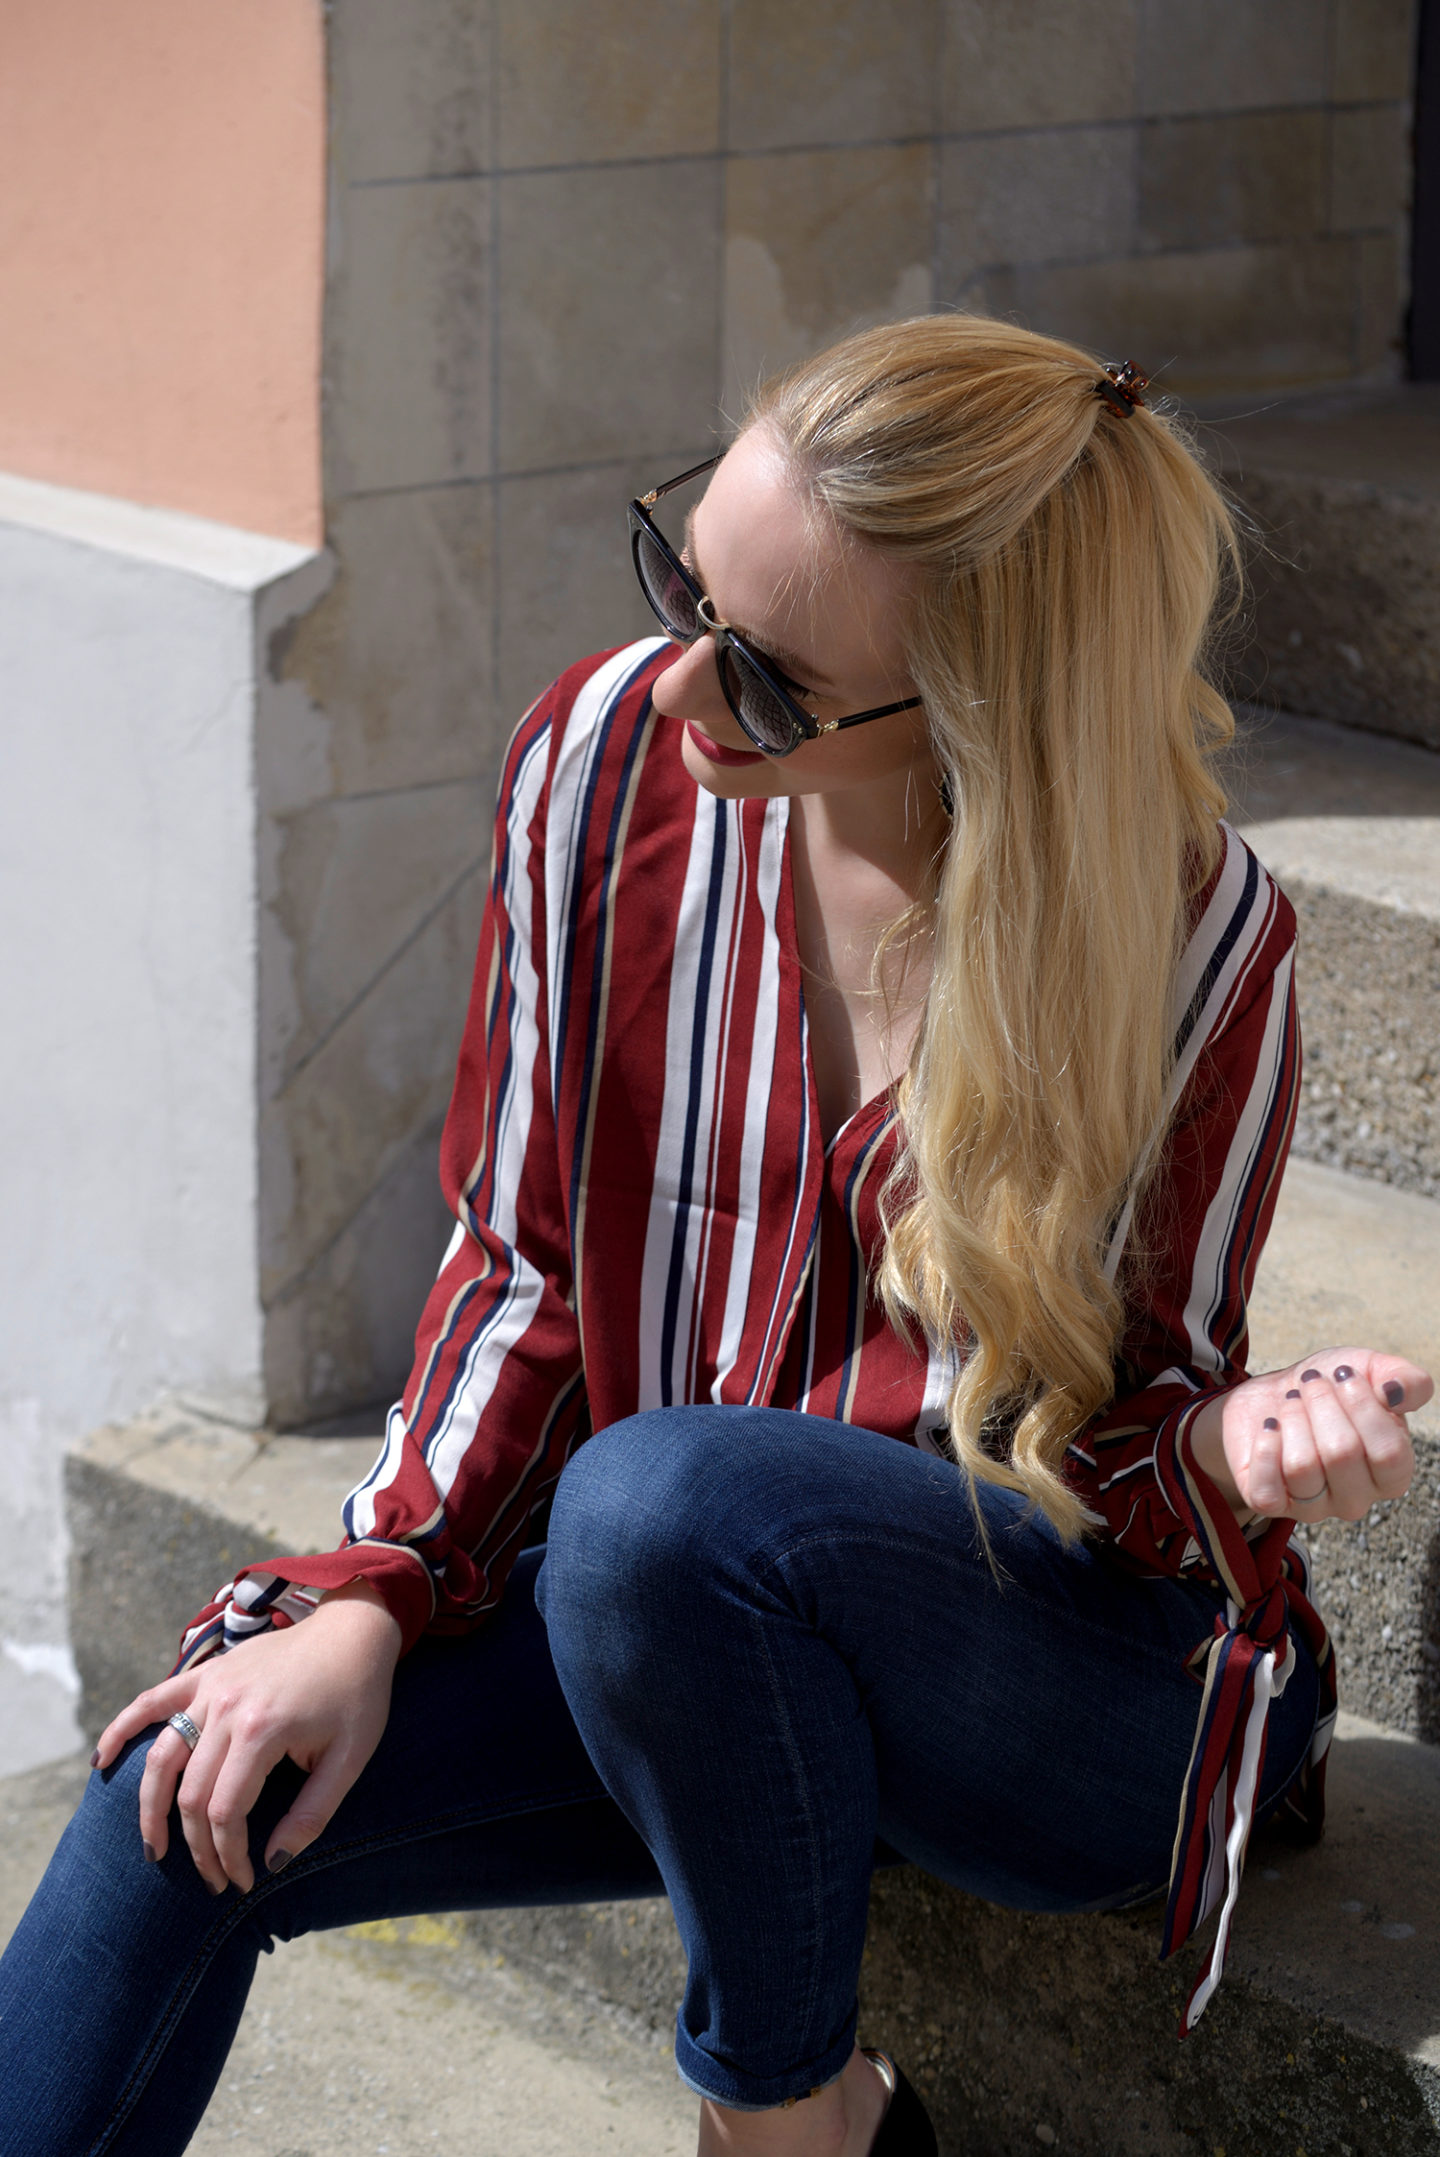 SheIn Striped Blouse in the Sun